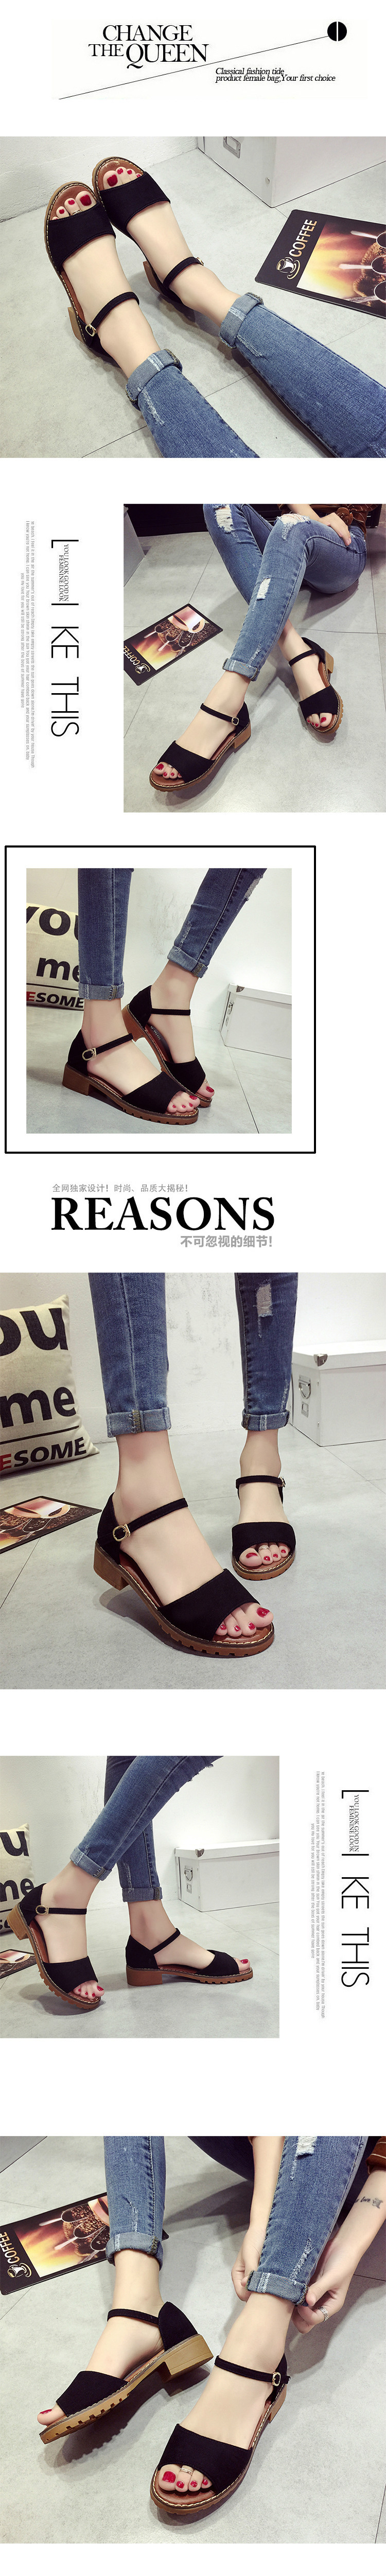 151bc1f02f9 CPI Summer Floral Sandals Fish Mouth Women Sandals Pu Suede Retro ...